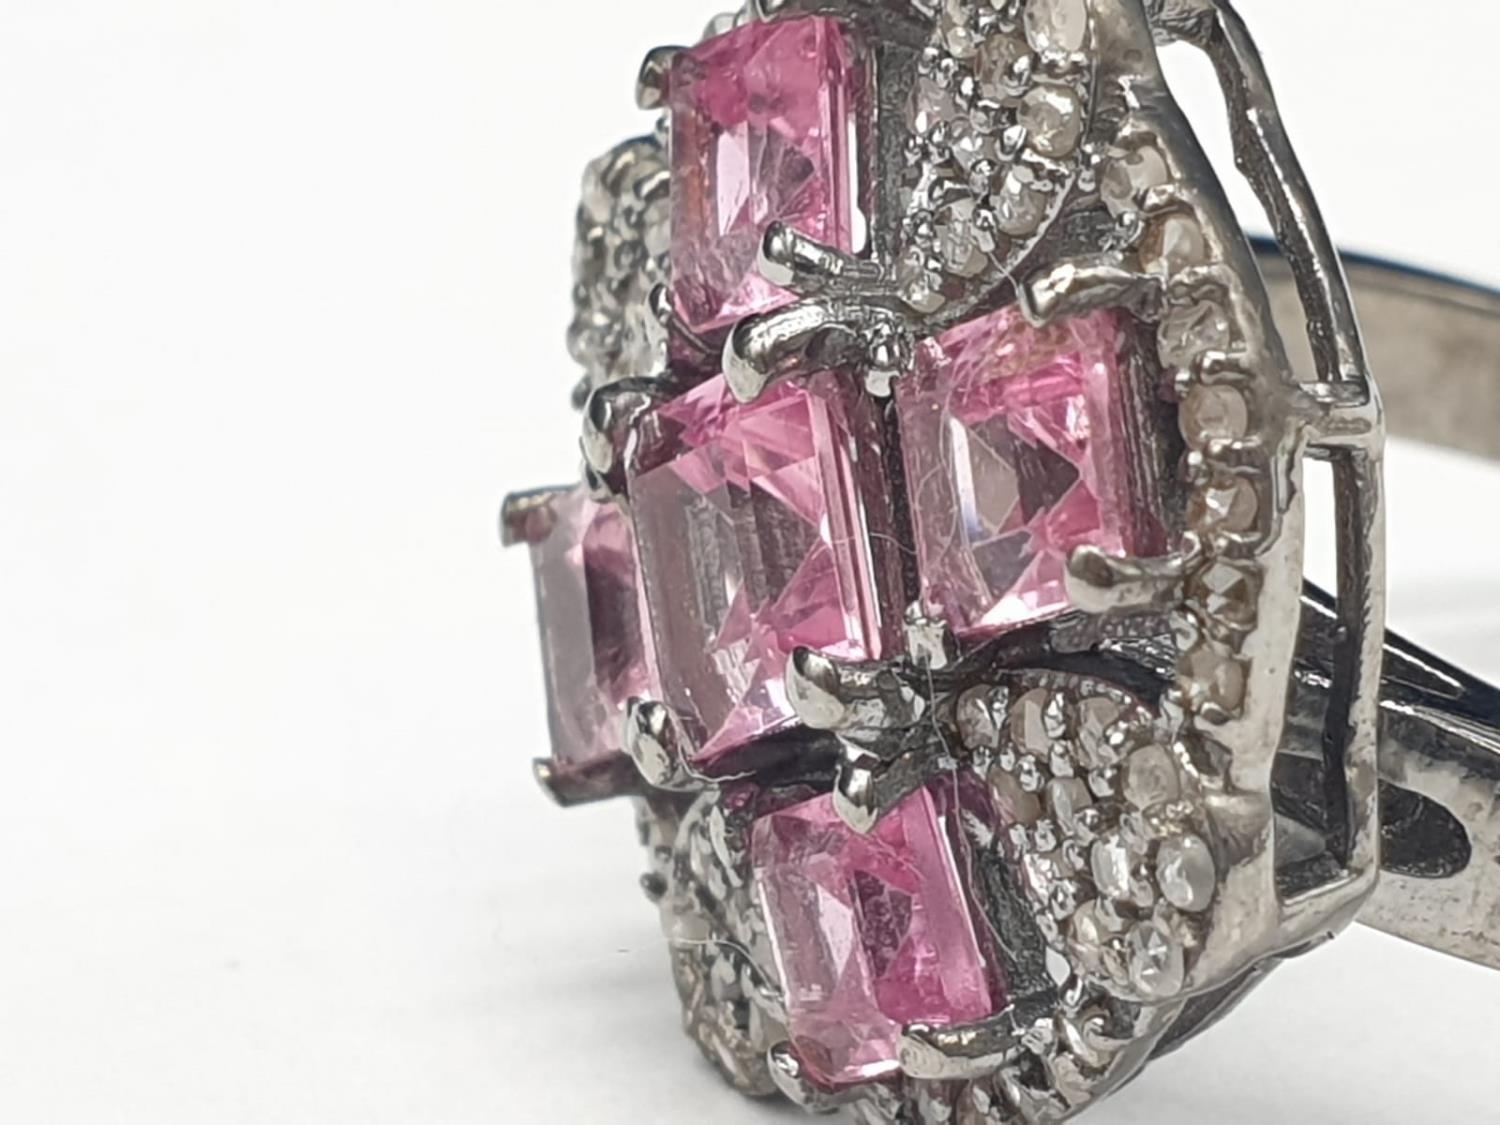 925 blackened silver ring. Consisting of 2.50 Ct Tourmaline & 0.50 Ct Rose cut diamonds, weight 6g - Image 2 of 6